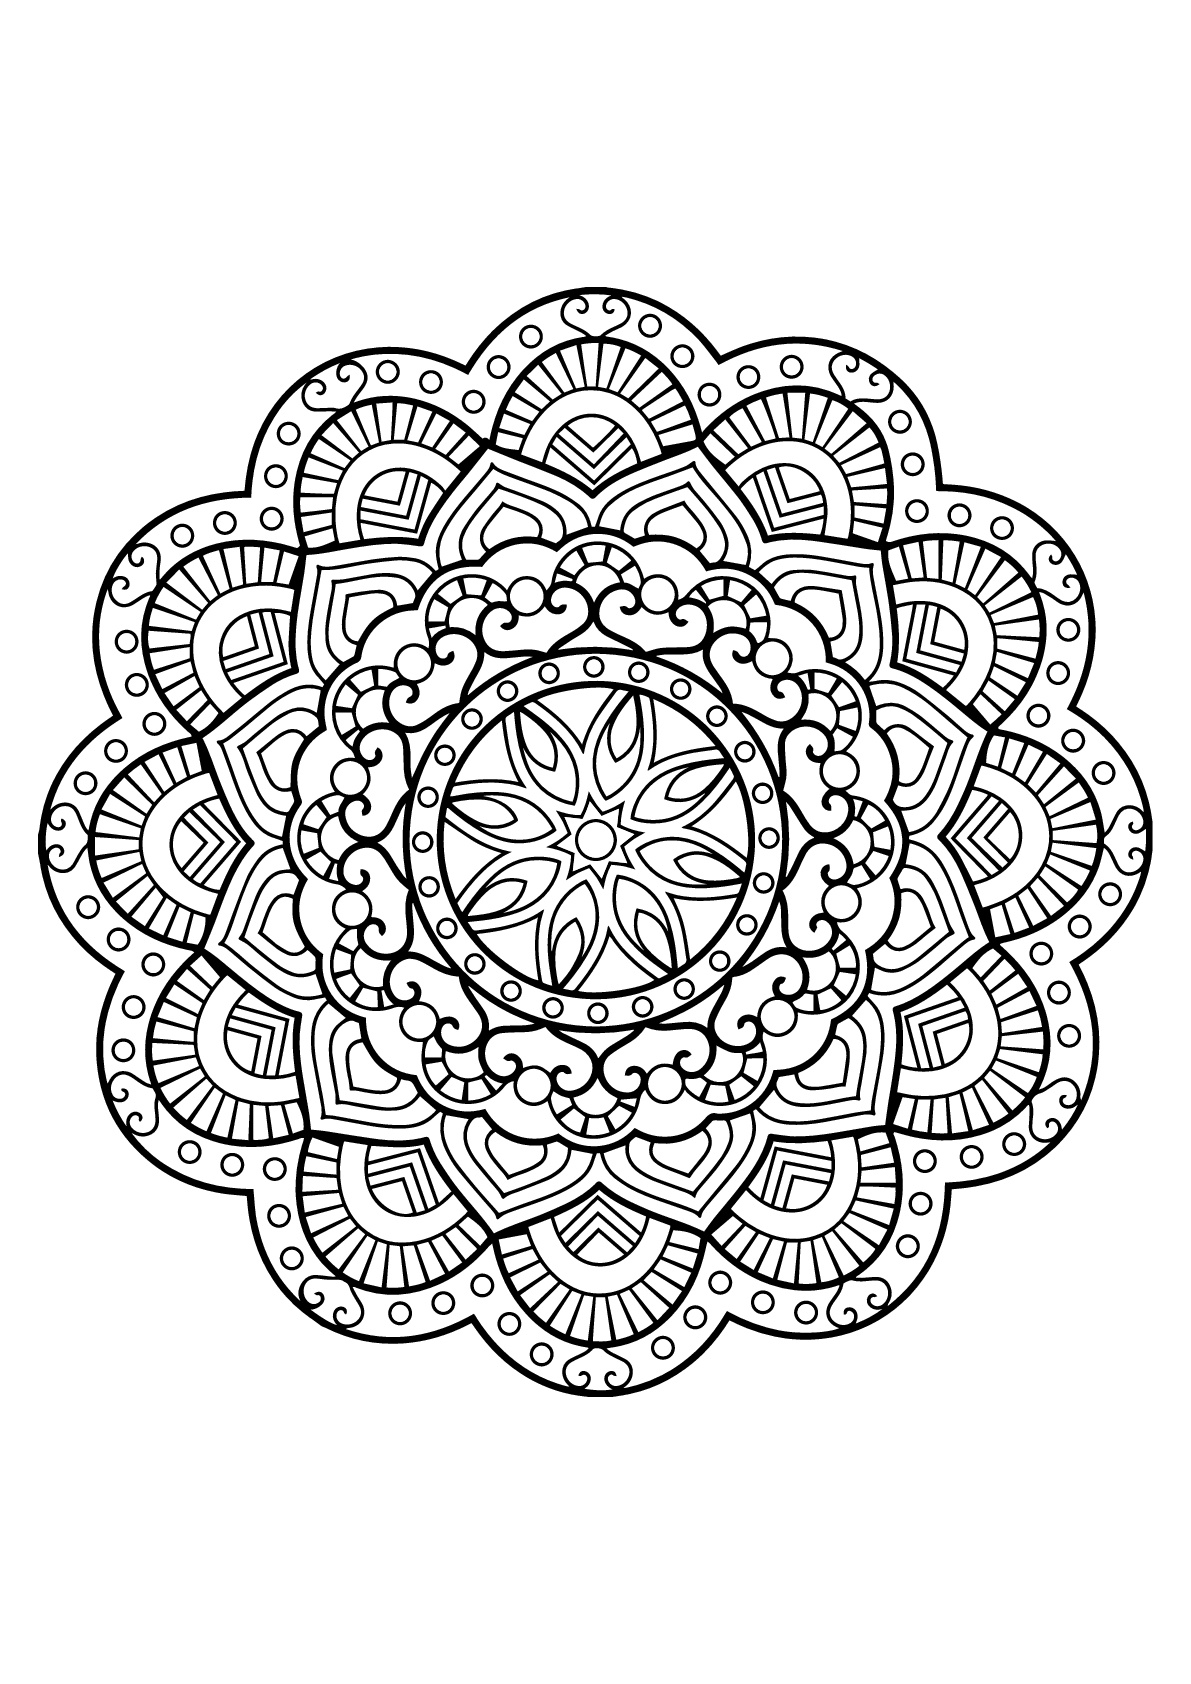 - Mandala From Free Coloring Books For Adults 26 - Mandalas Adult